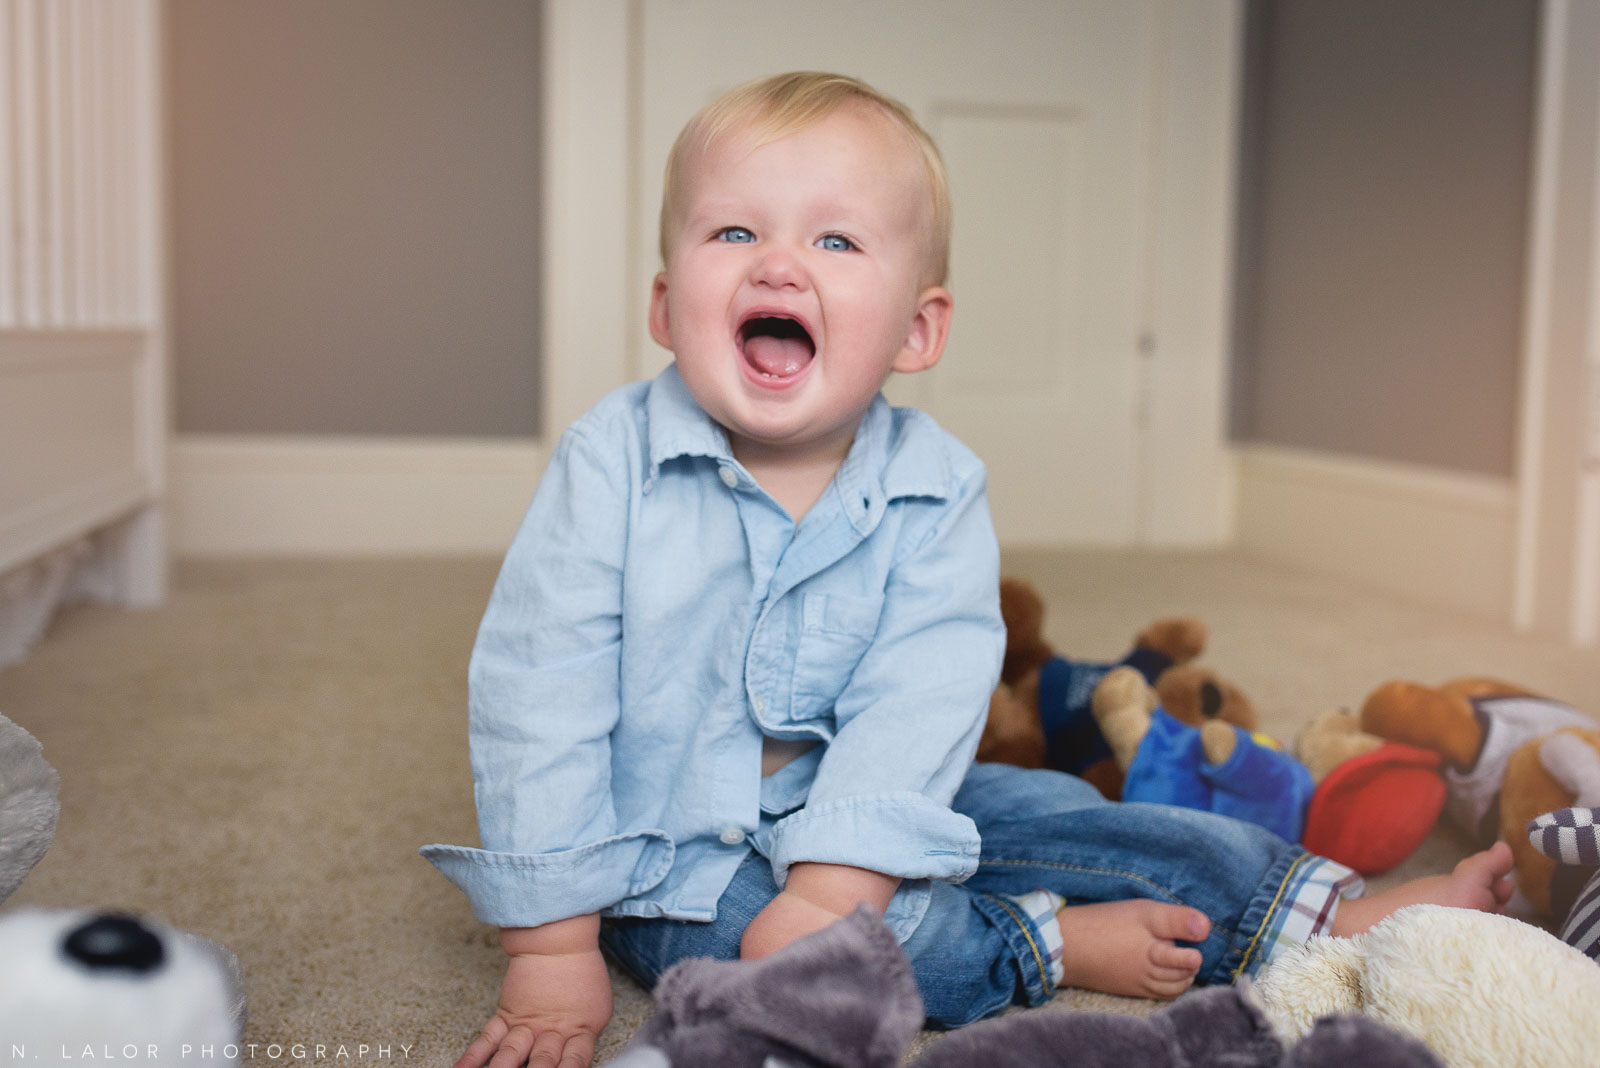 Expression and emotion during a 1-year old photo session. Lifestyle portrait by N. Lalor Photography.